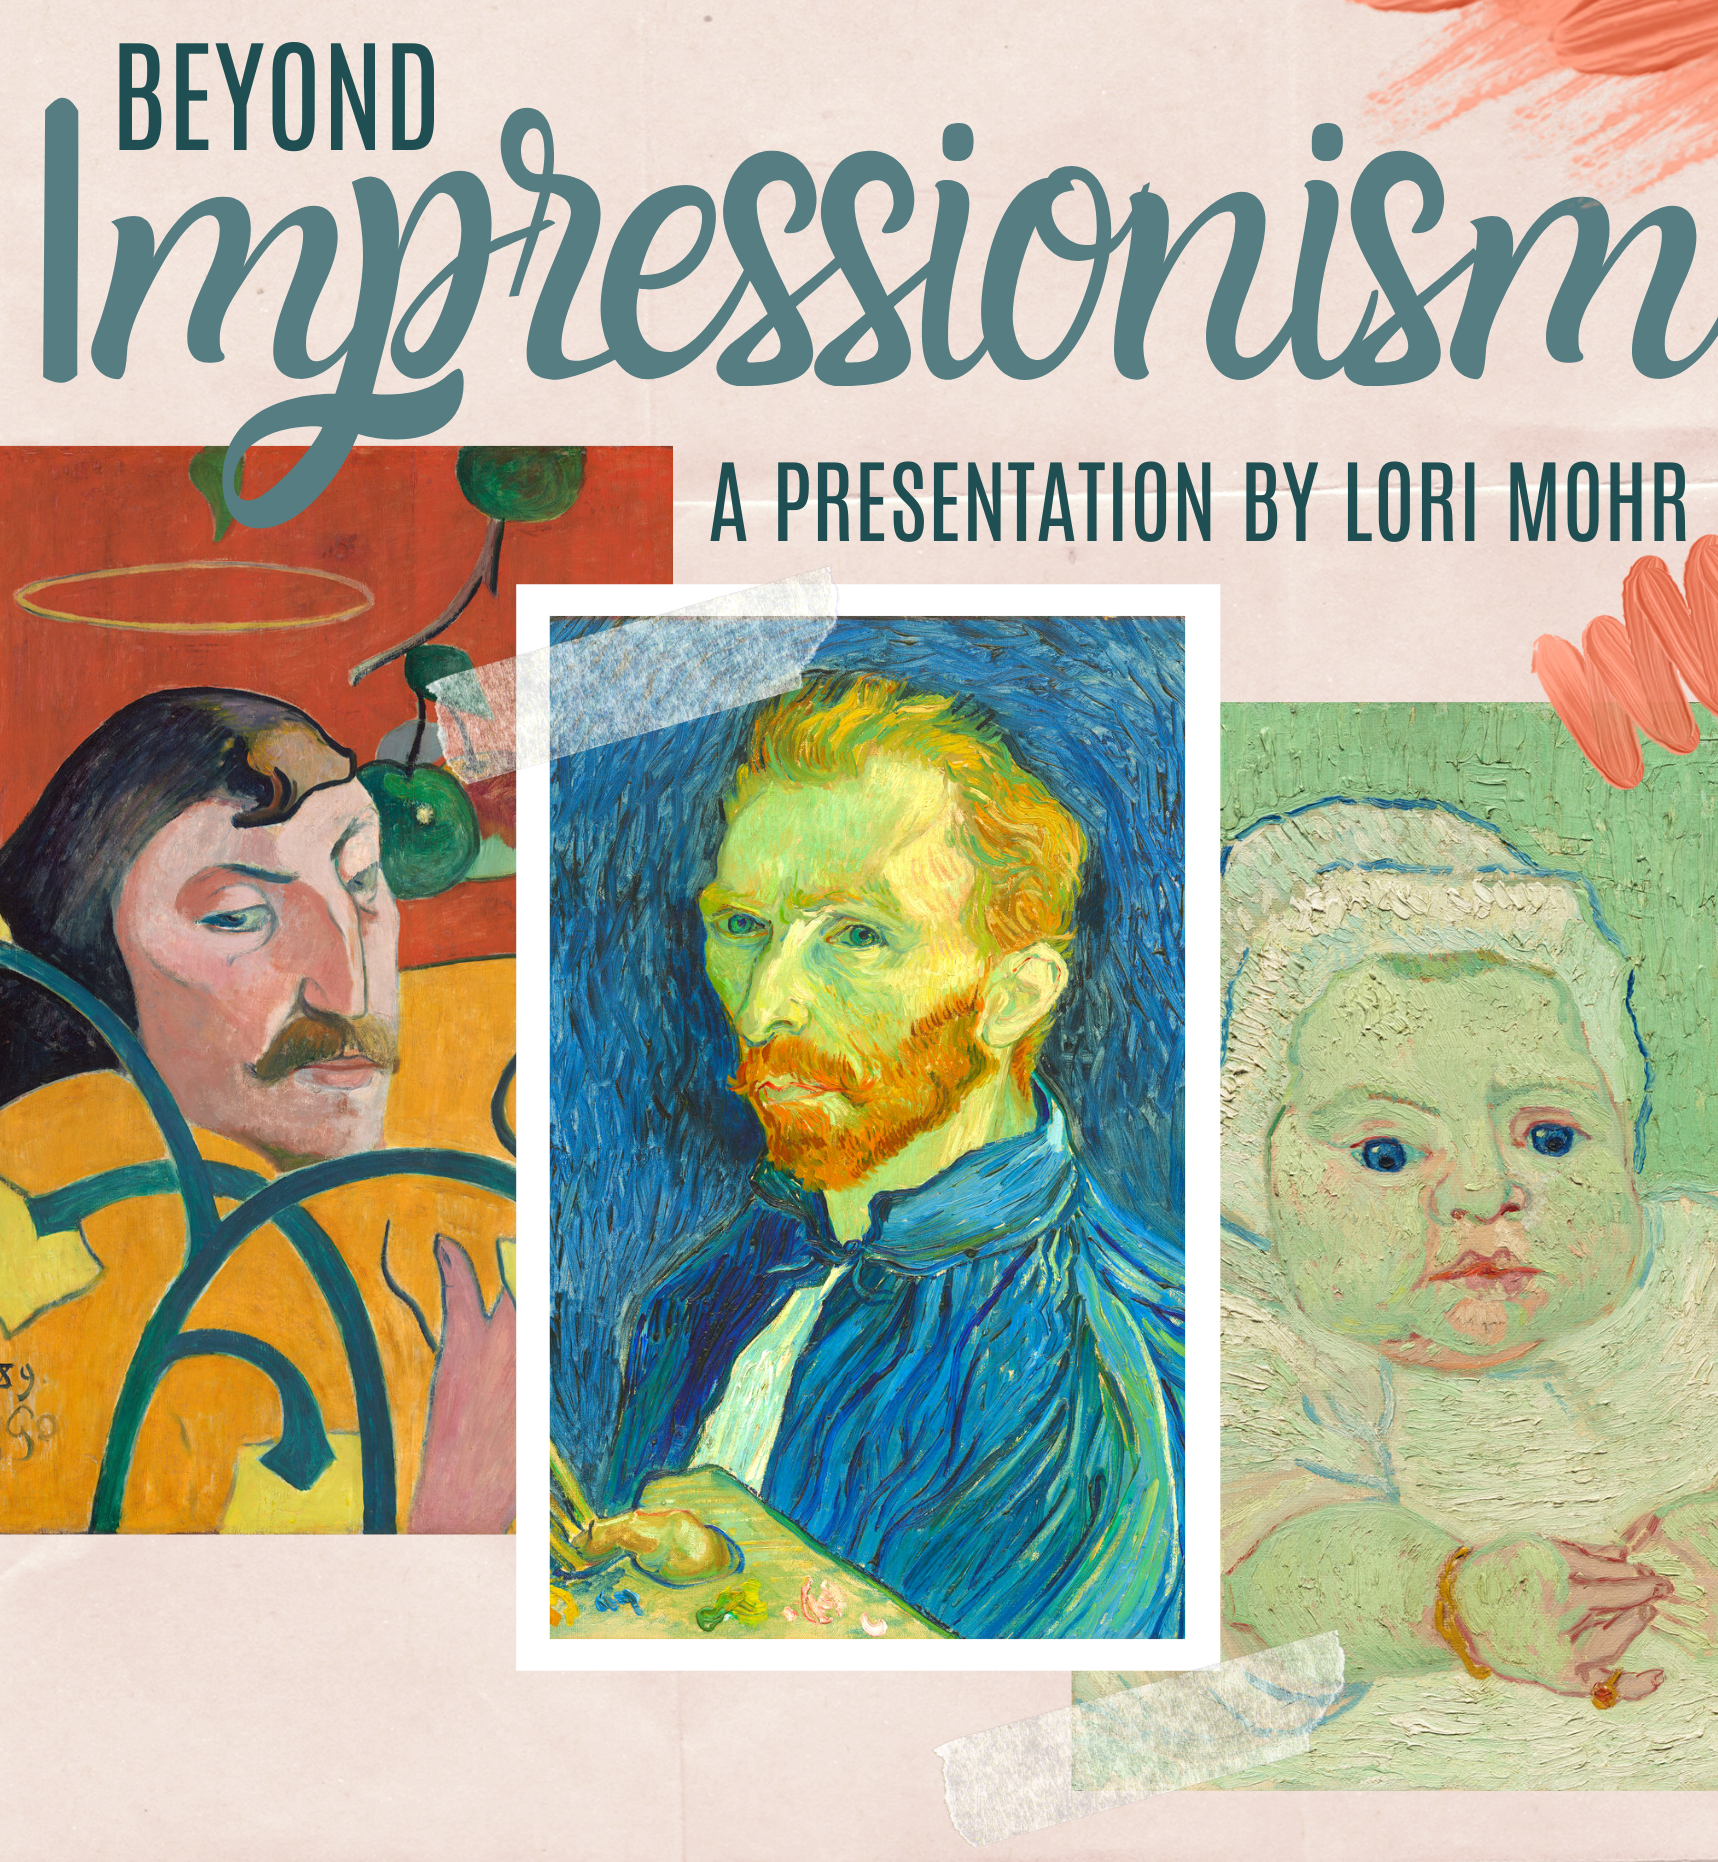 two portraits painted by Van Gogh and one portrait painted by Gauguin are depicted. Text on flyer found within event post.